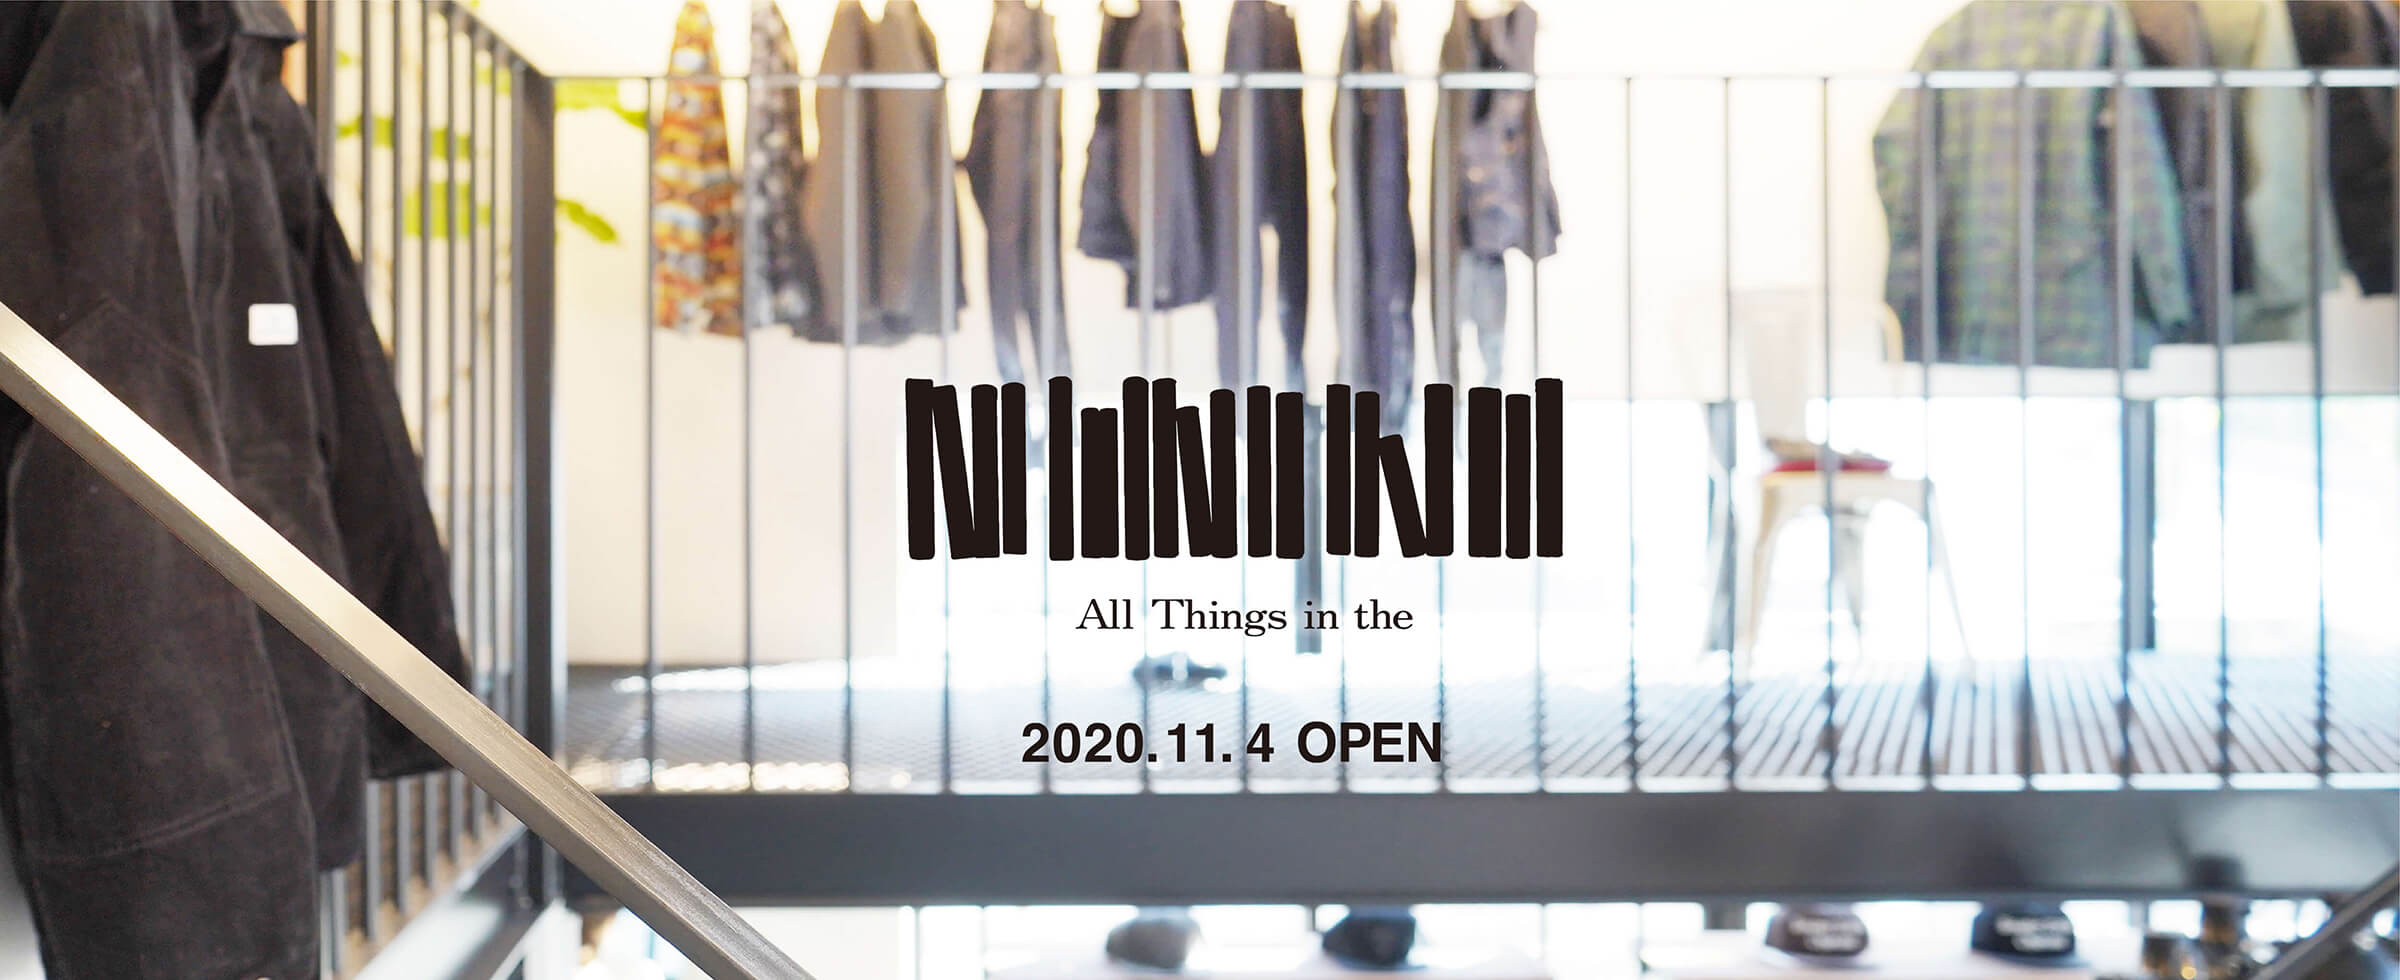 All Things in the 2020.11.4 OPEN